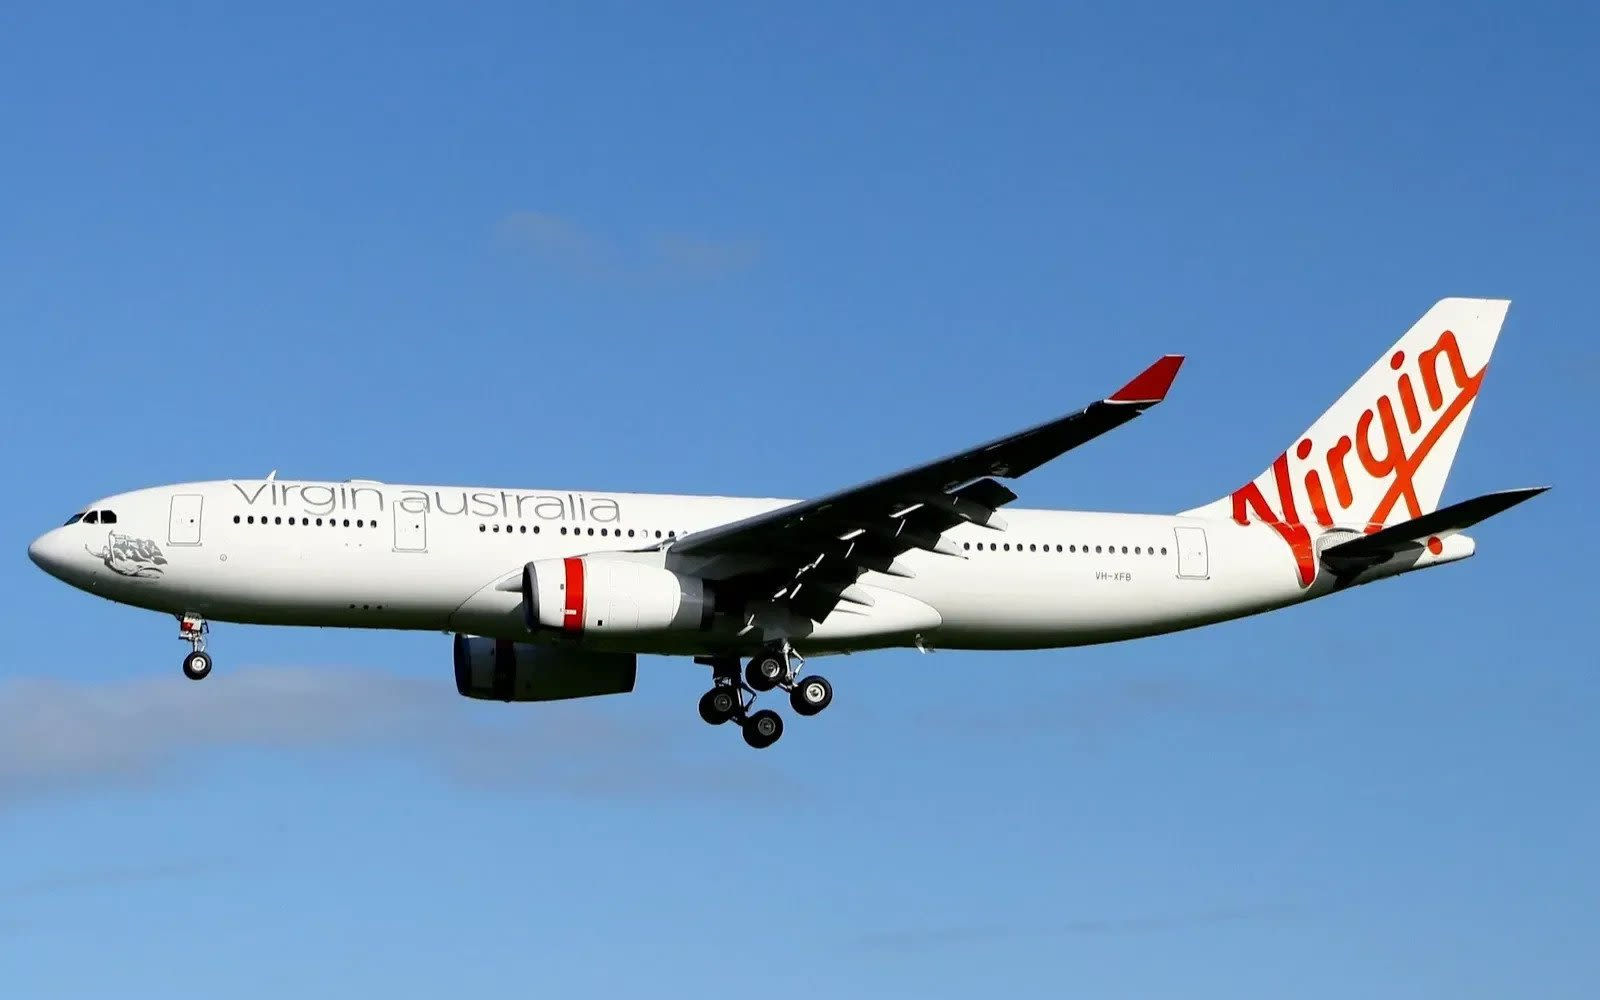 A Virgin Australia plane flying against a blue sky